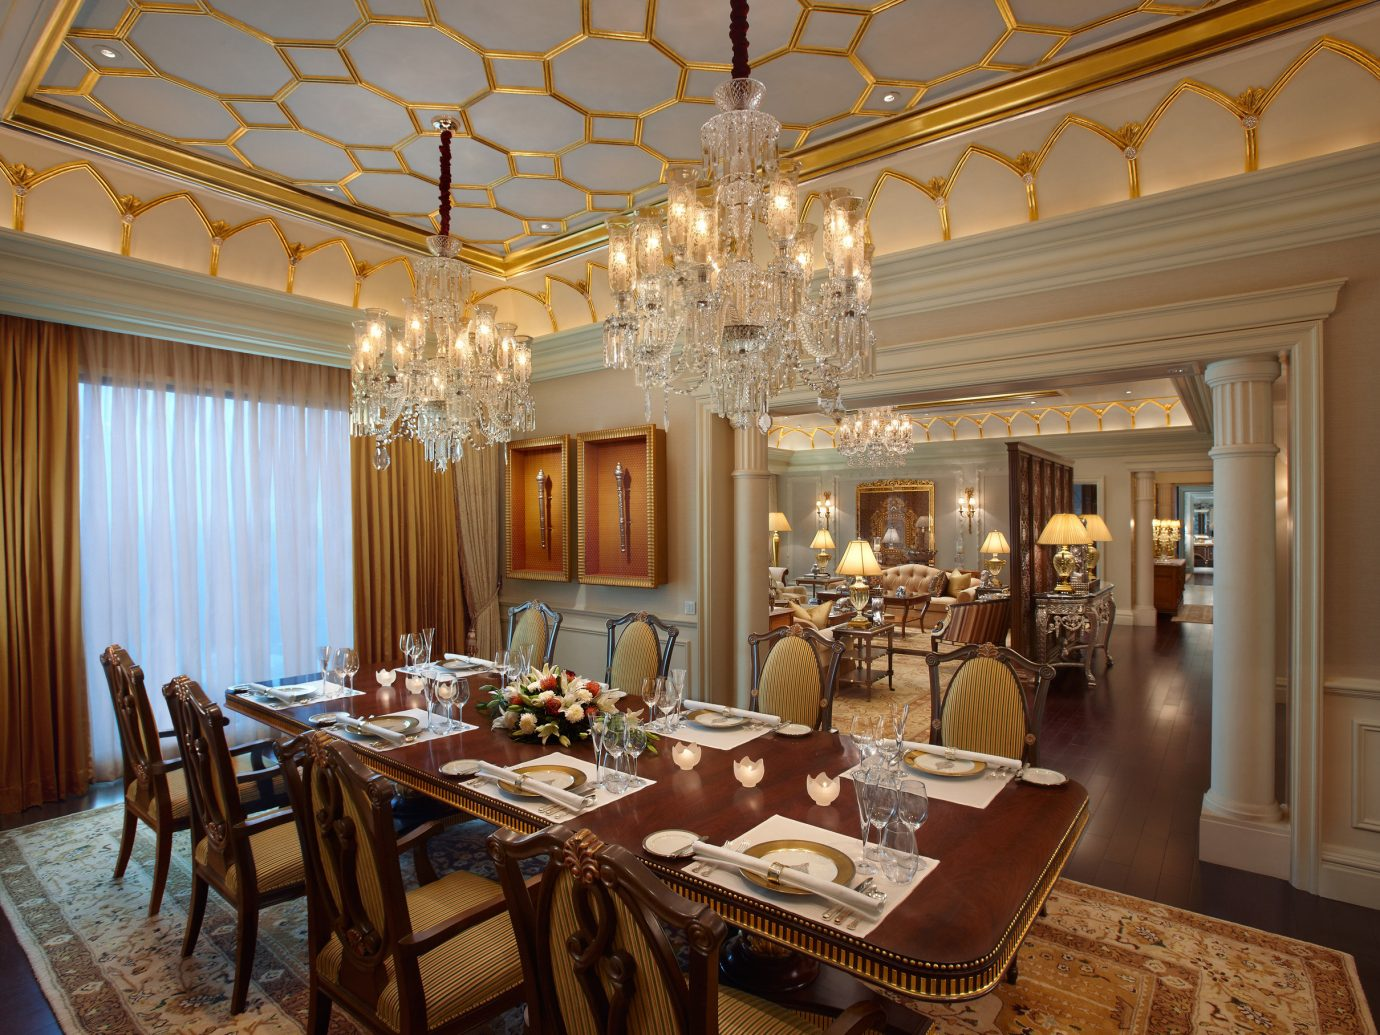 Hotels Luxury Travel indoor table floor ceiling dining room chair room window interior design home Dining estate real estate function hall restaurant living room furniture dining table several